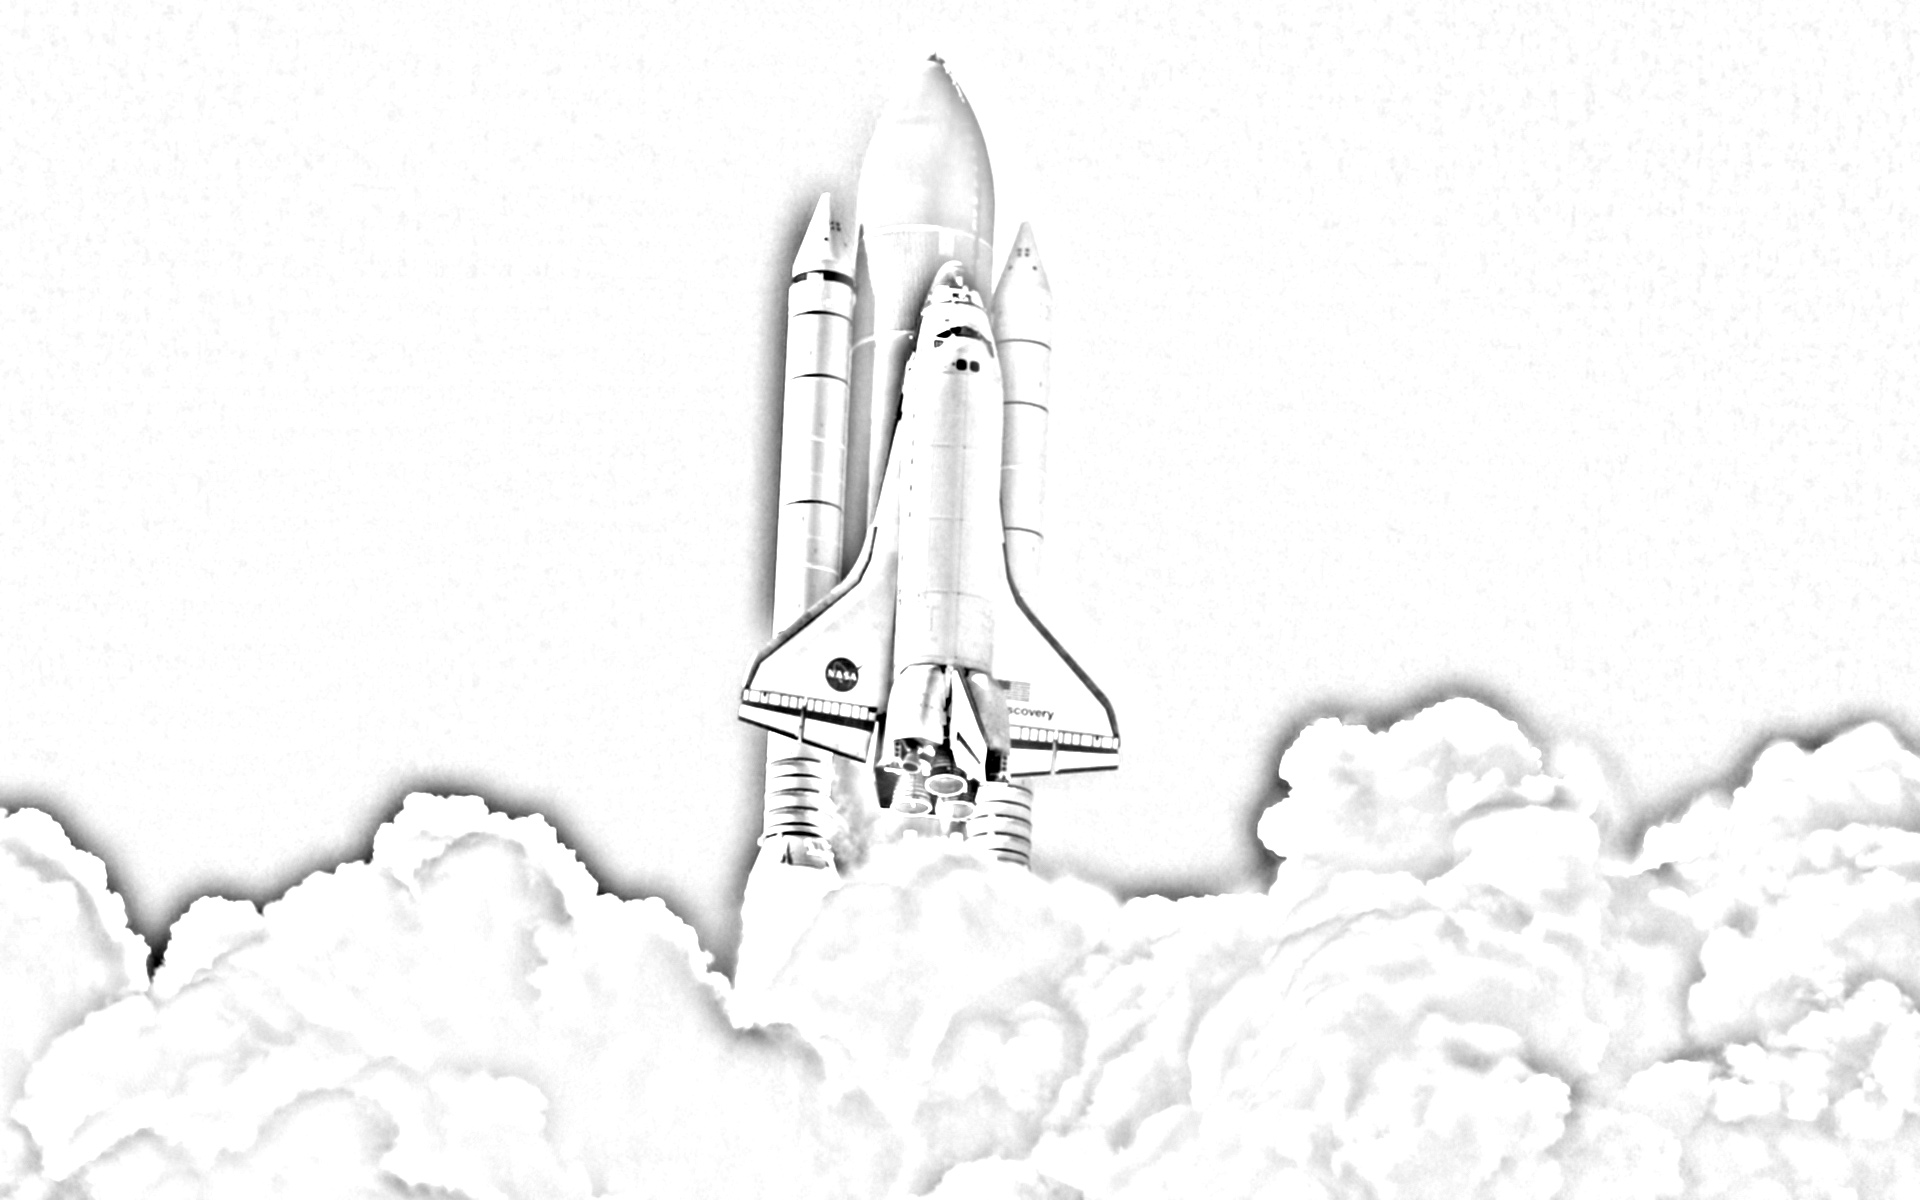 Rocket ship launched coloring page